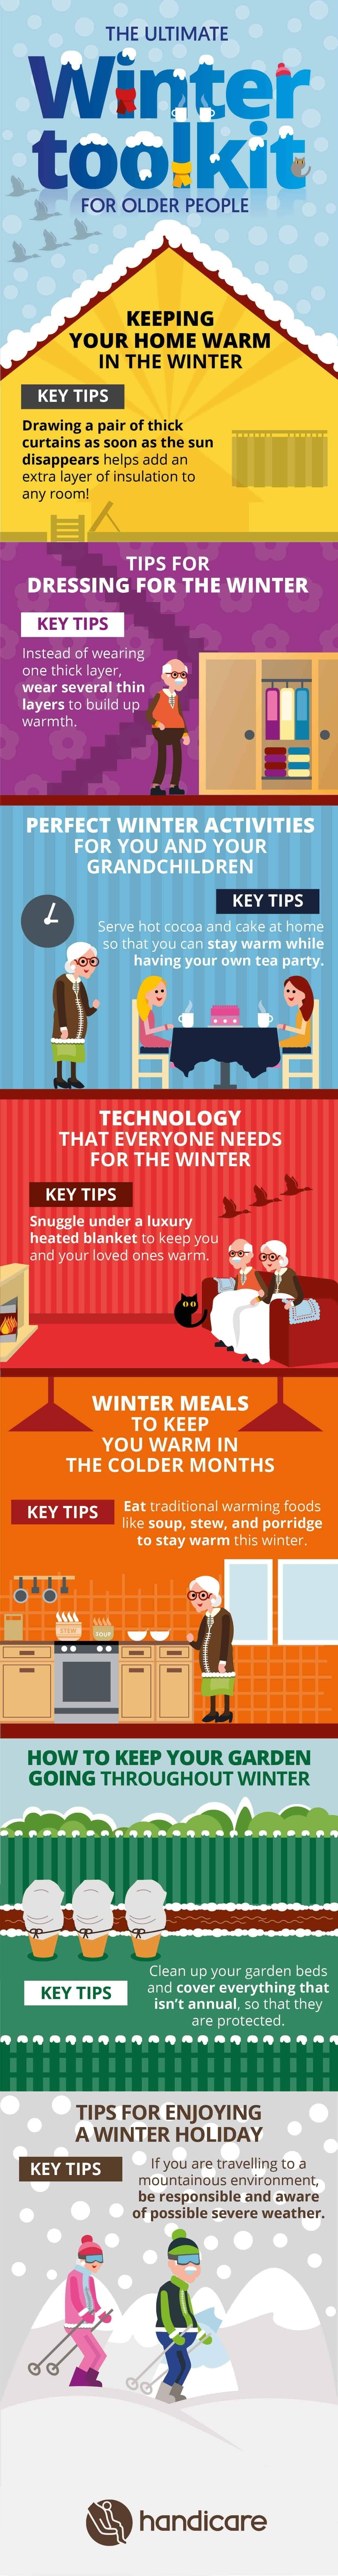 The ultimate winter toolkit for older people #infographic